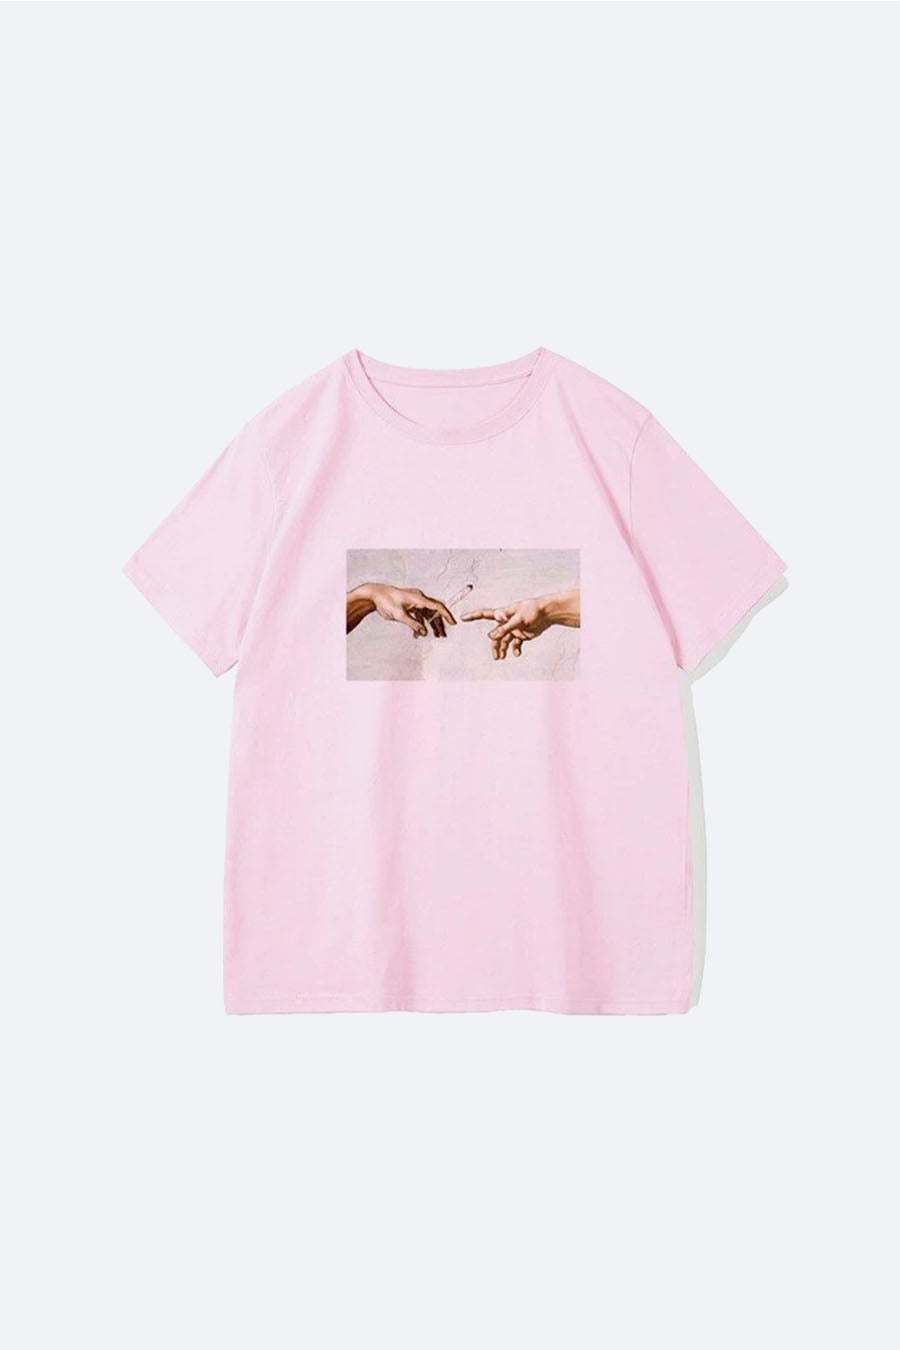 Michelangelo T-Shirt in Pink